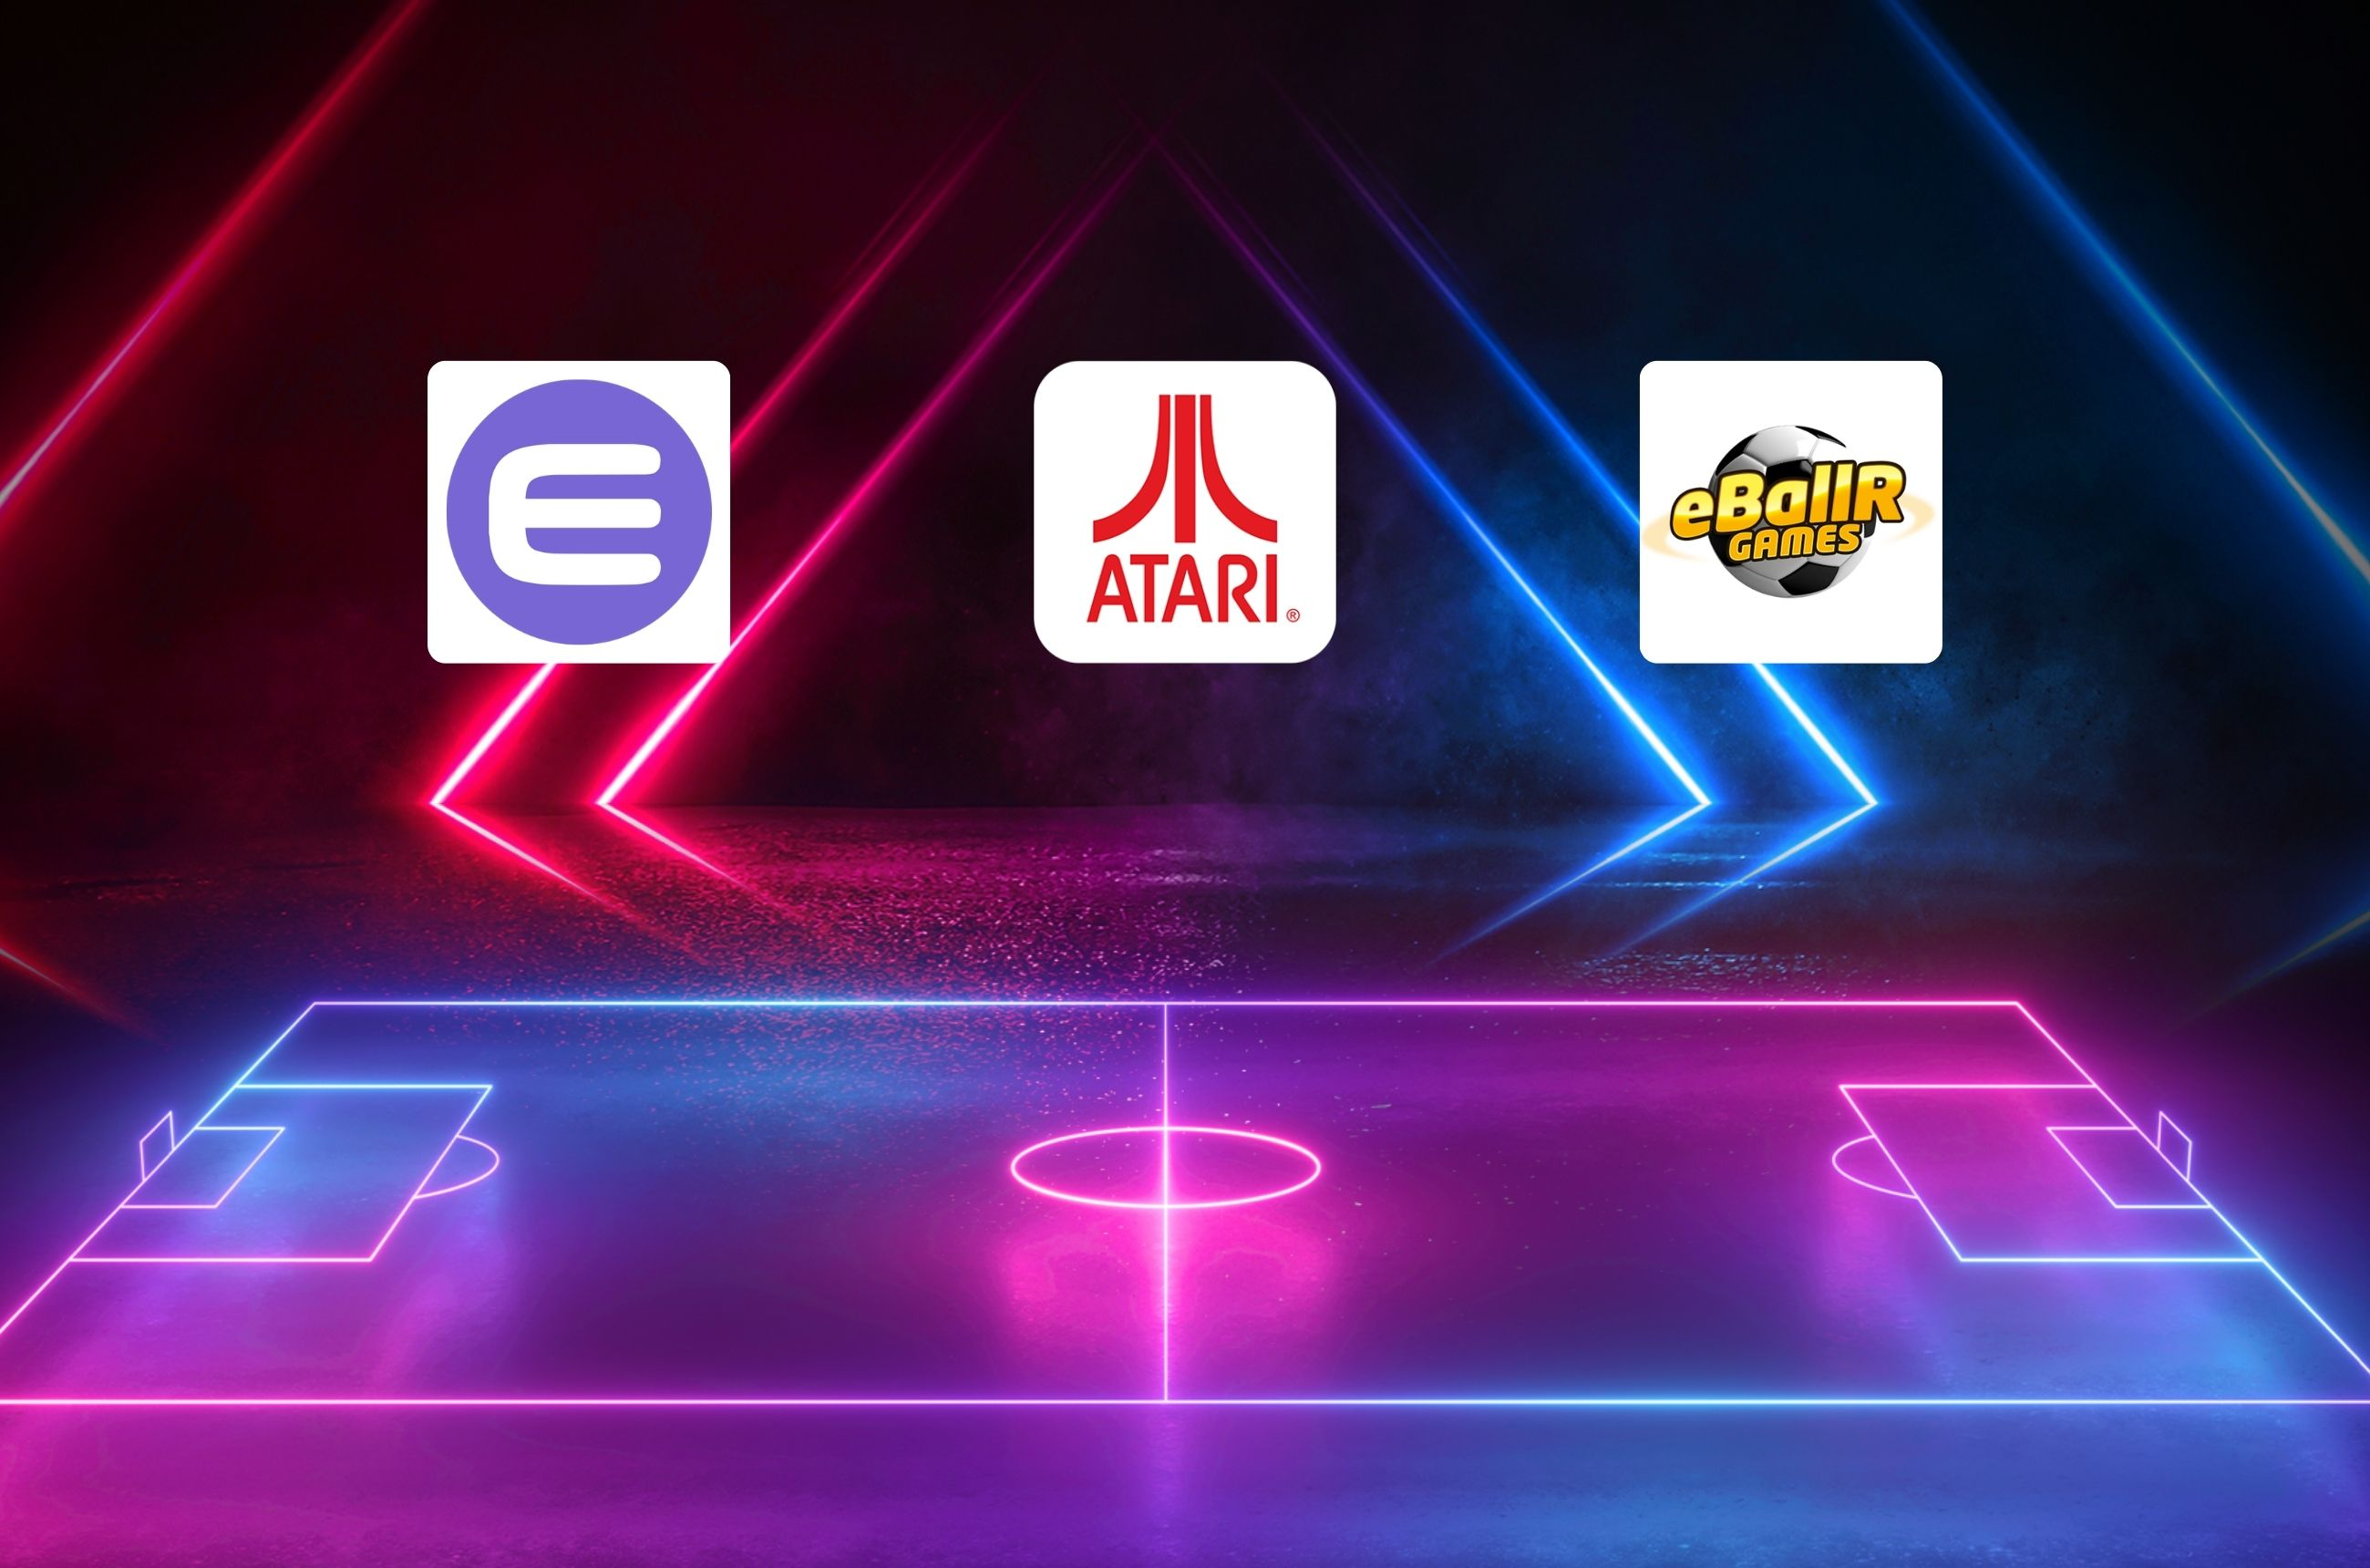 Welcoming Atari and eBallR Games to the Enjin Ecosystem